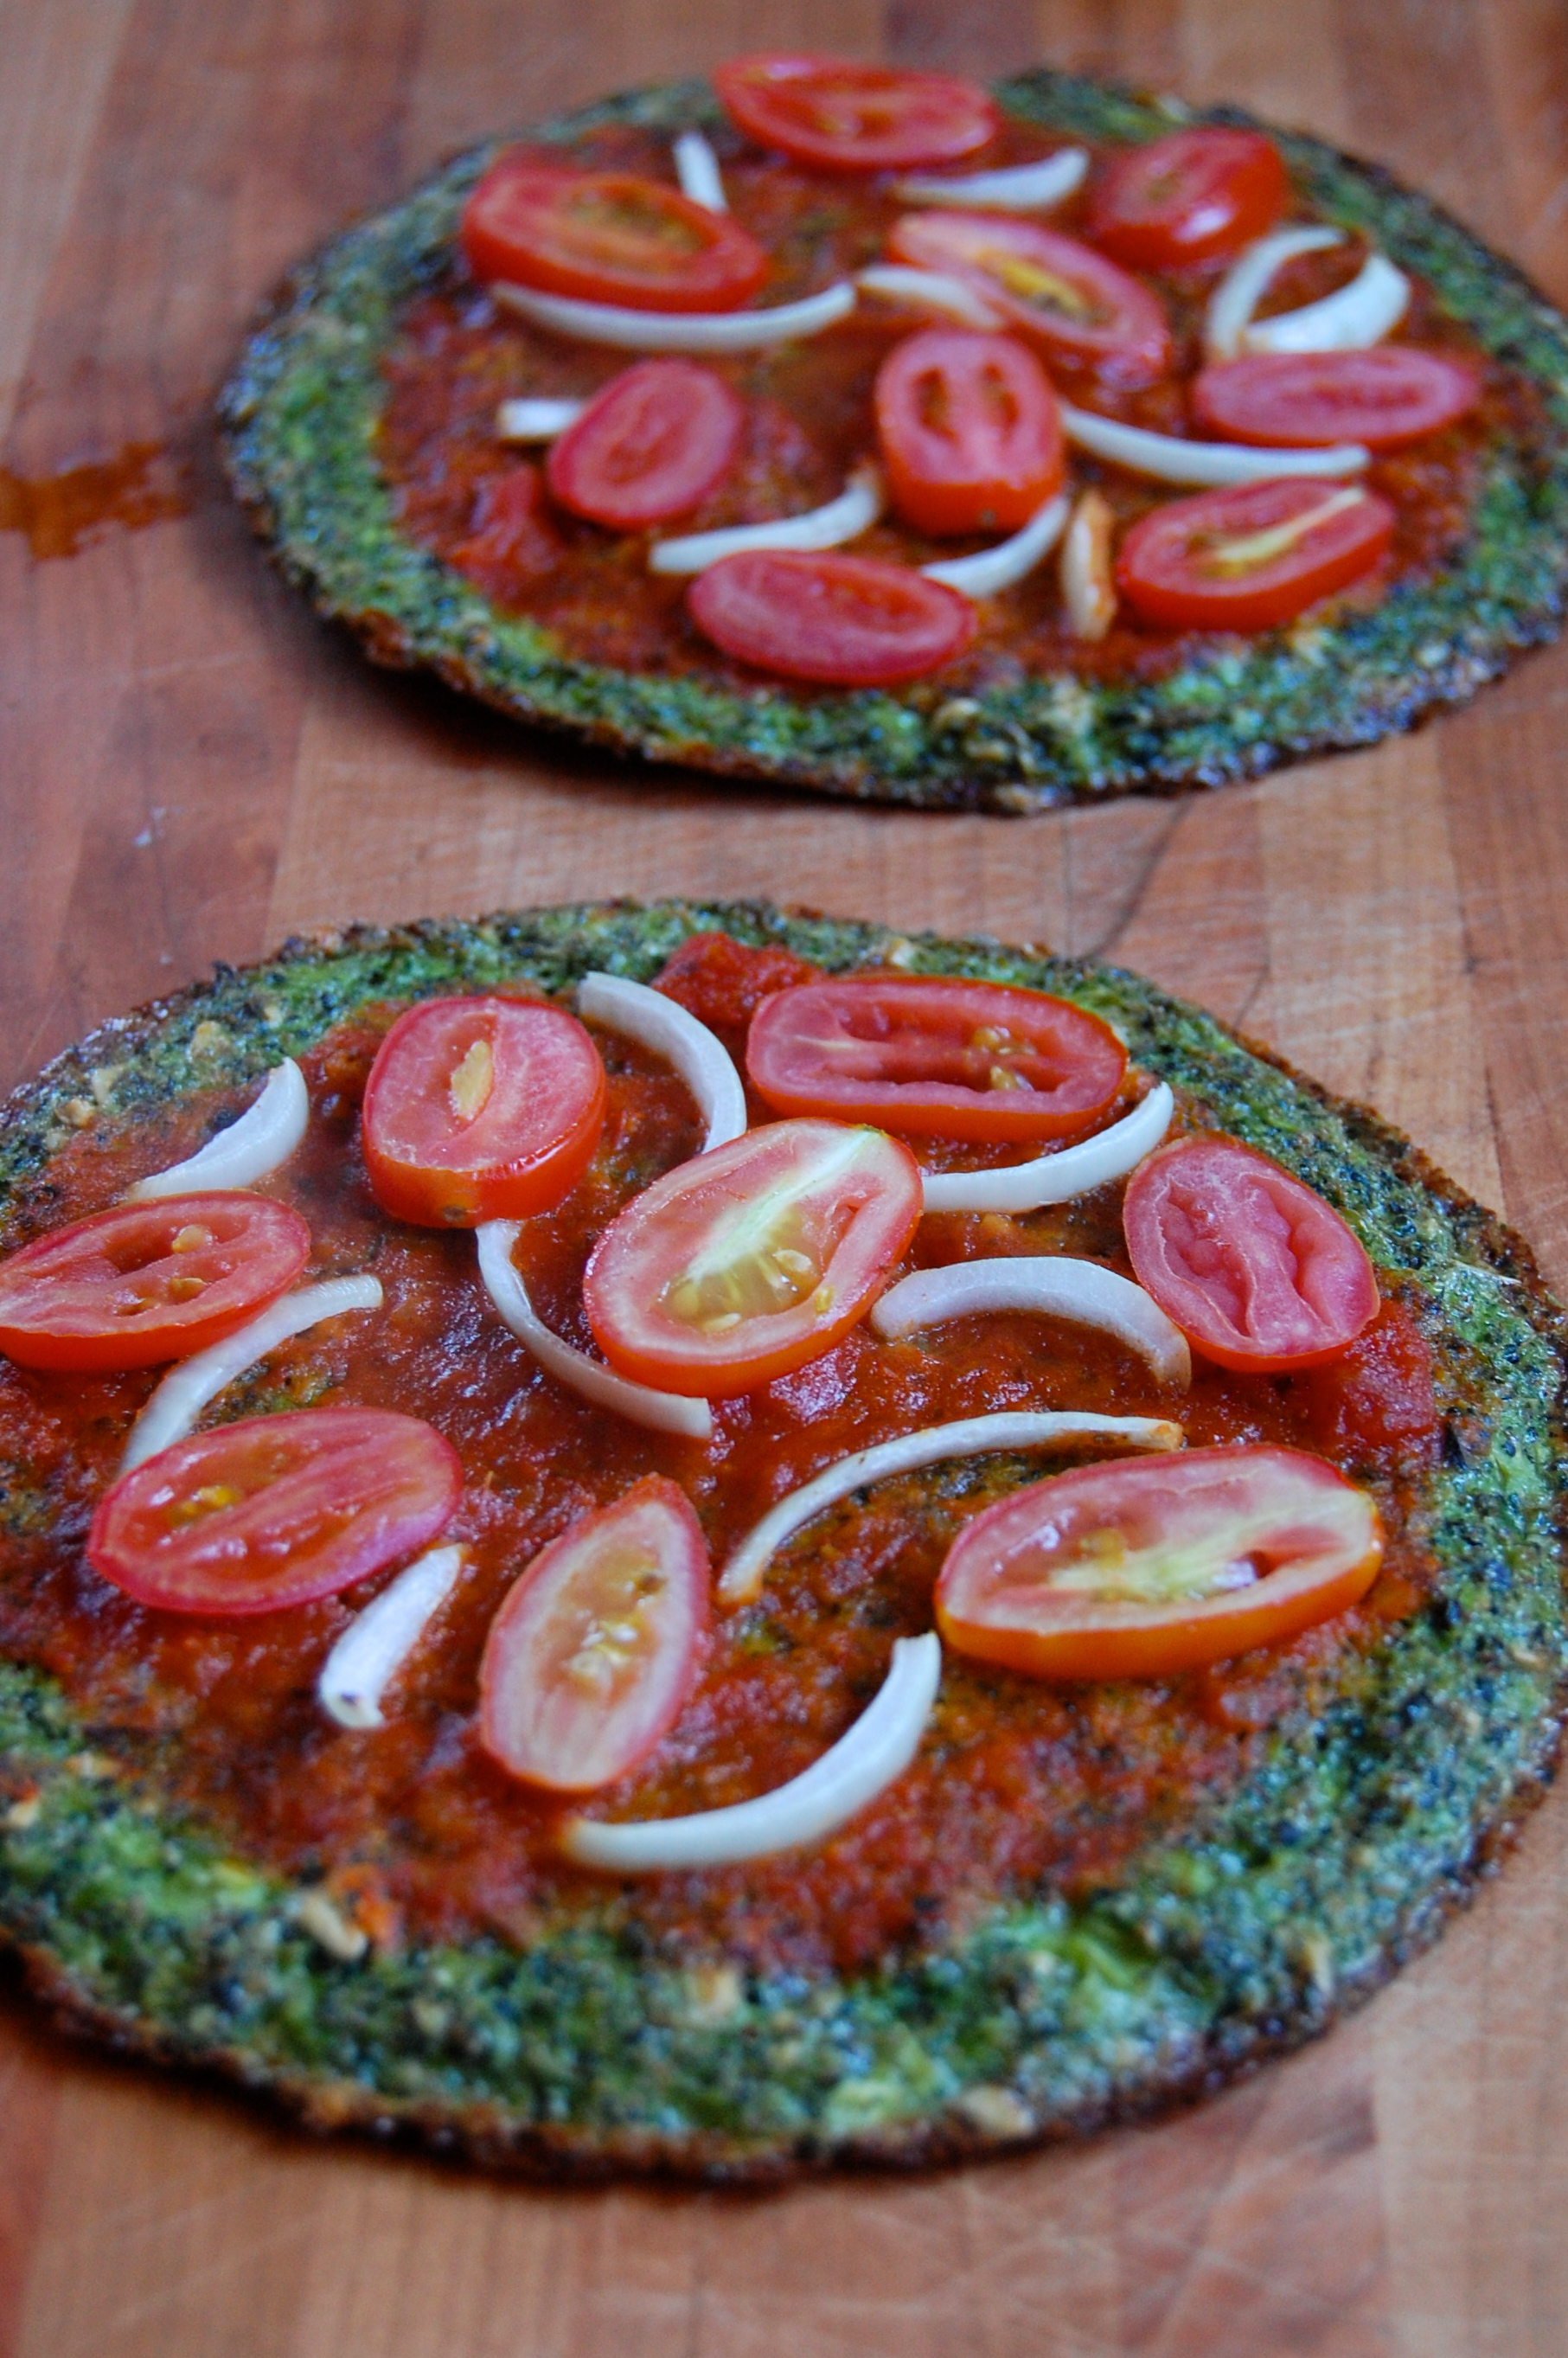 How To Broccoli Pizza Crust Uproot Kitchen